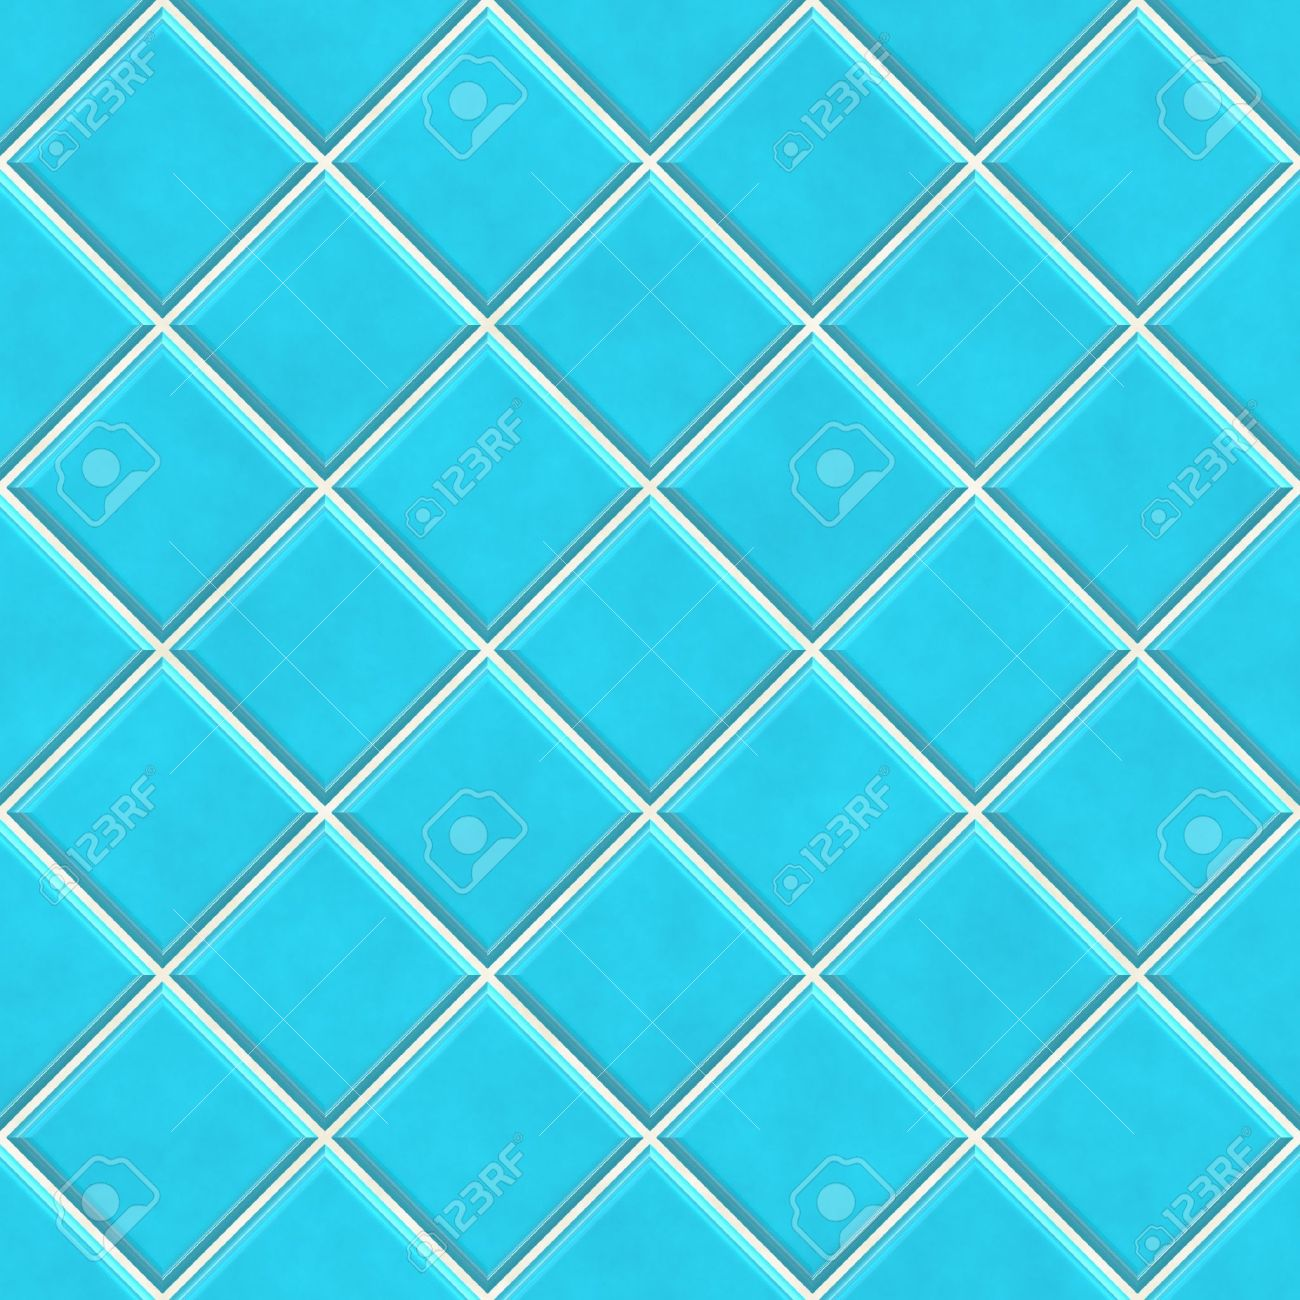 Blue Bathroom Floor Tiles Texture Seamless Blue Tiles Texture